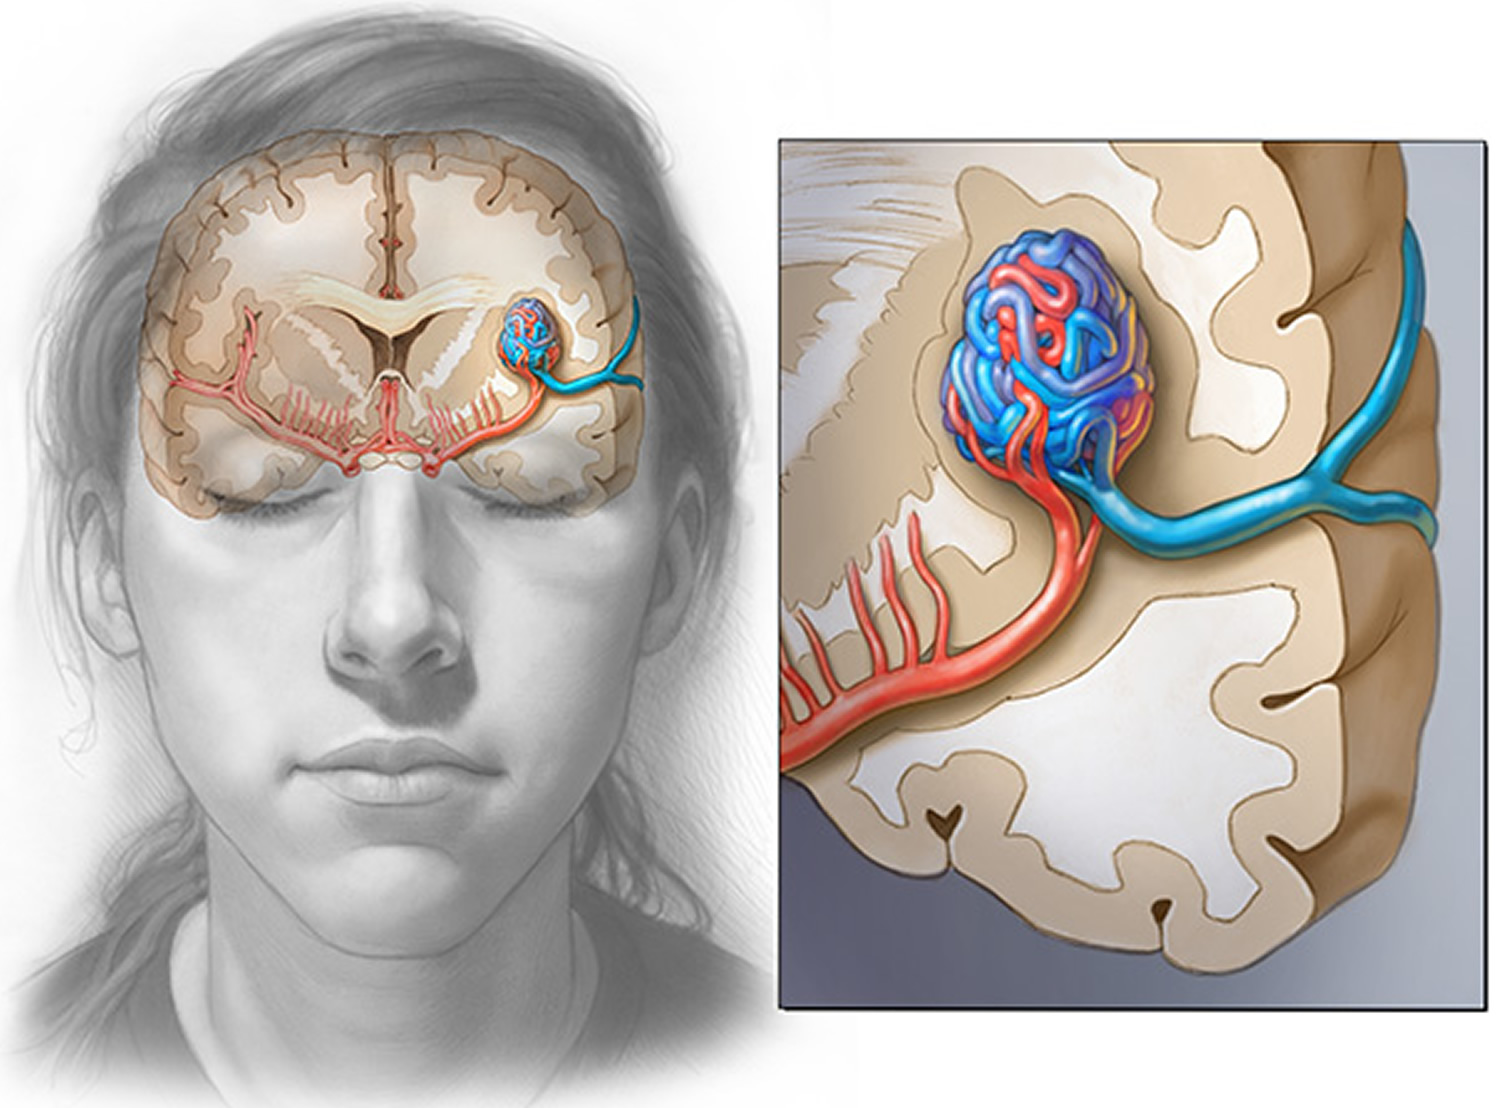 Arteriovenous Malformation - Brain Avm - Causes, Symptoms ...